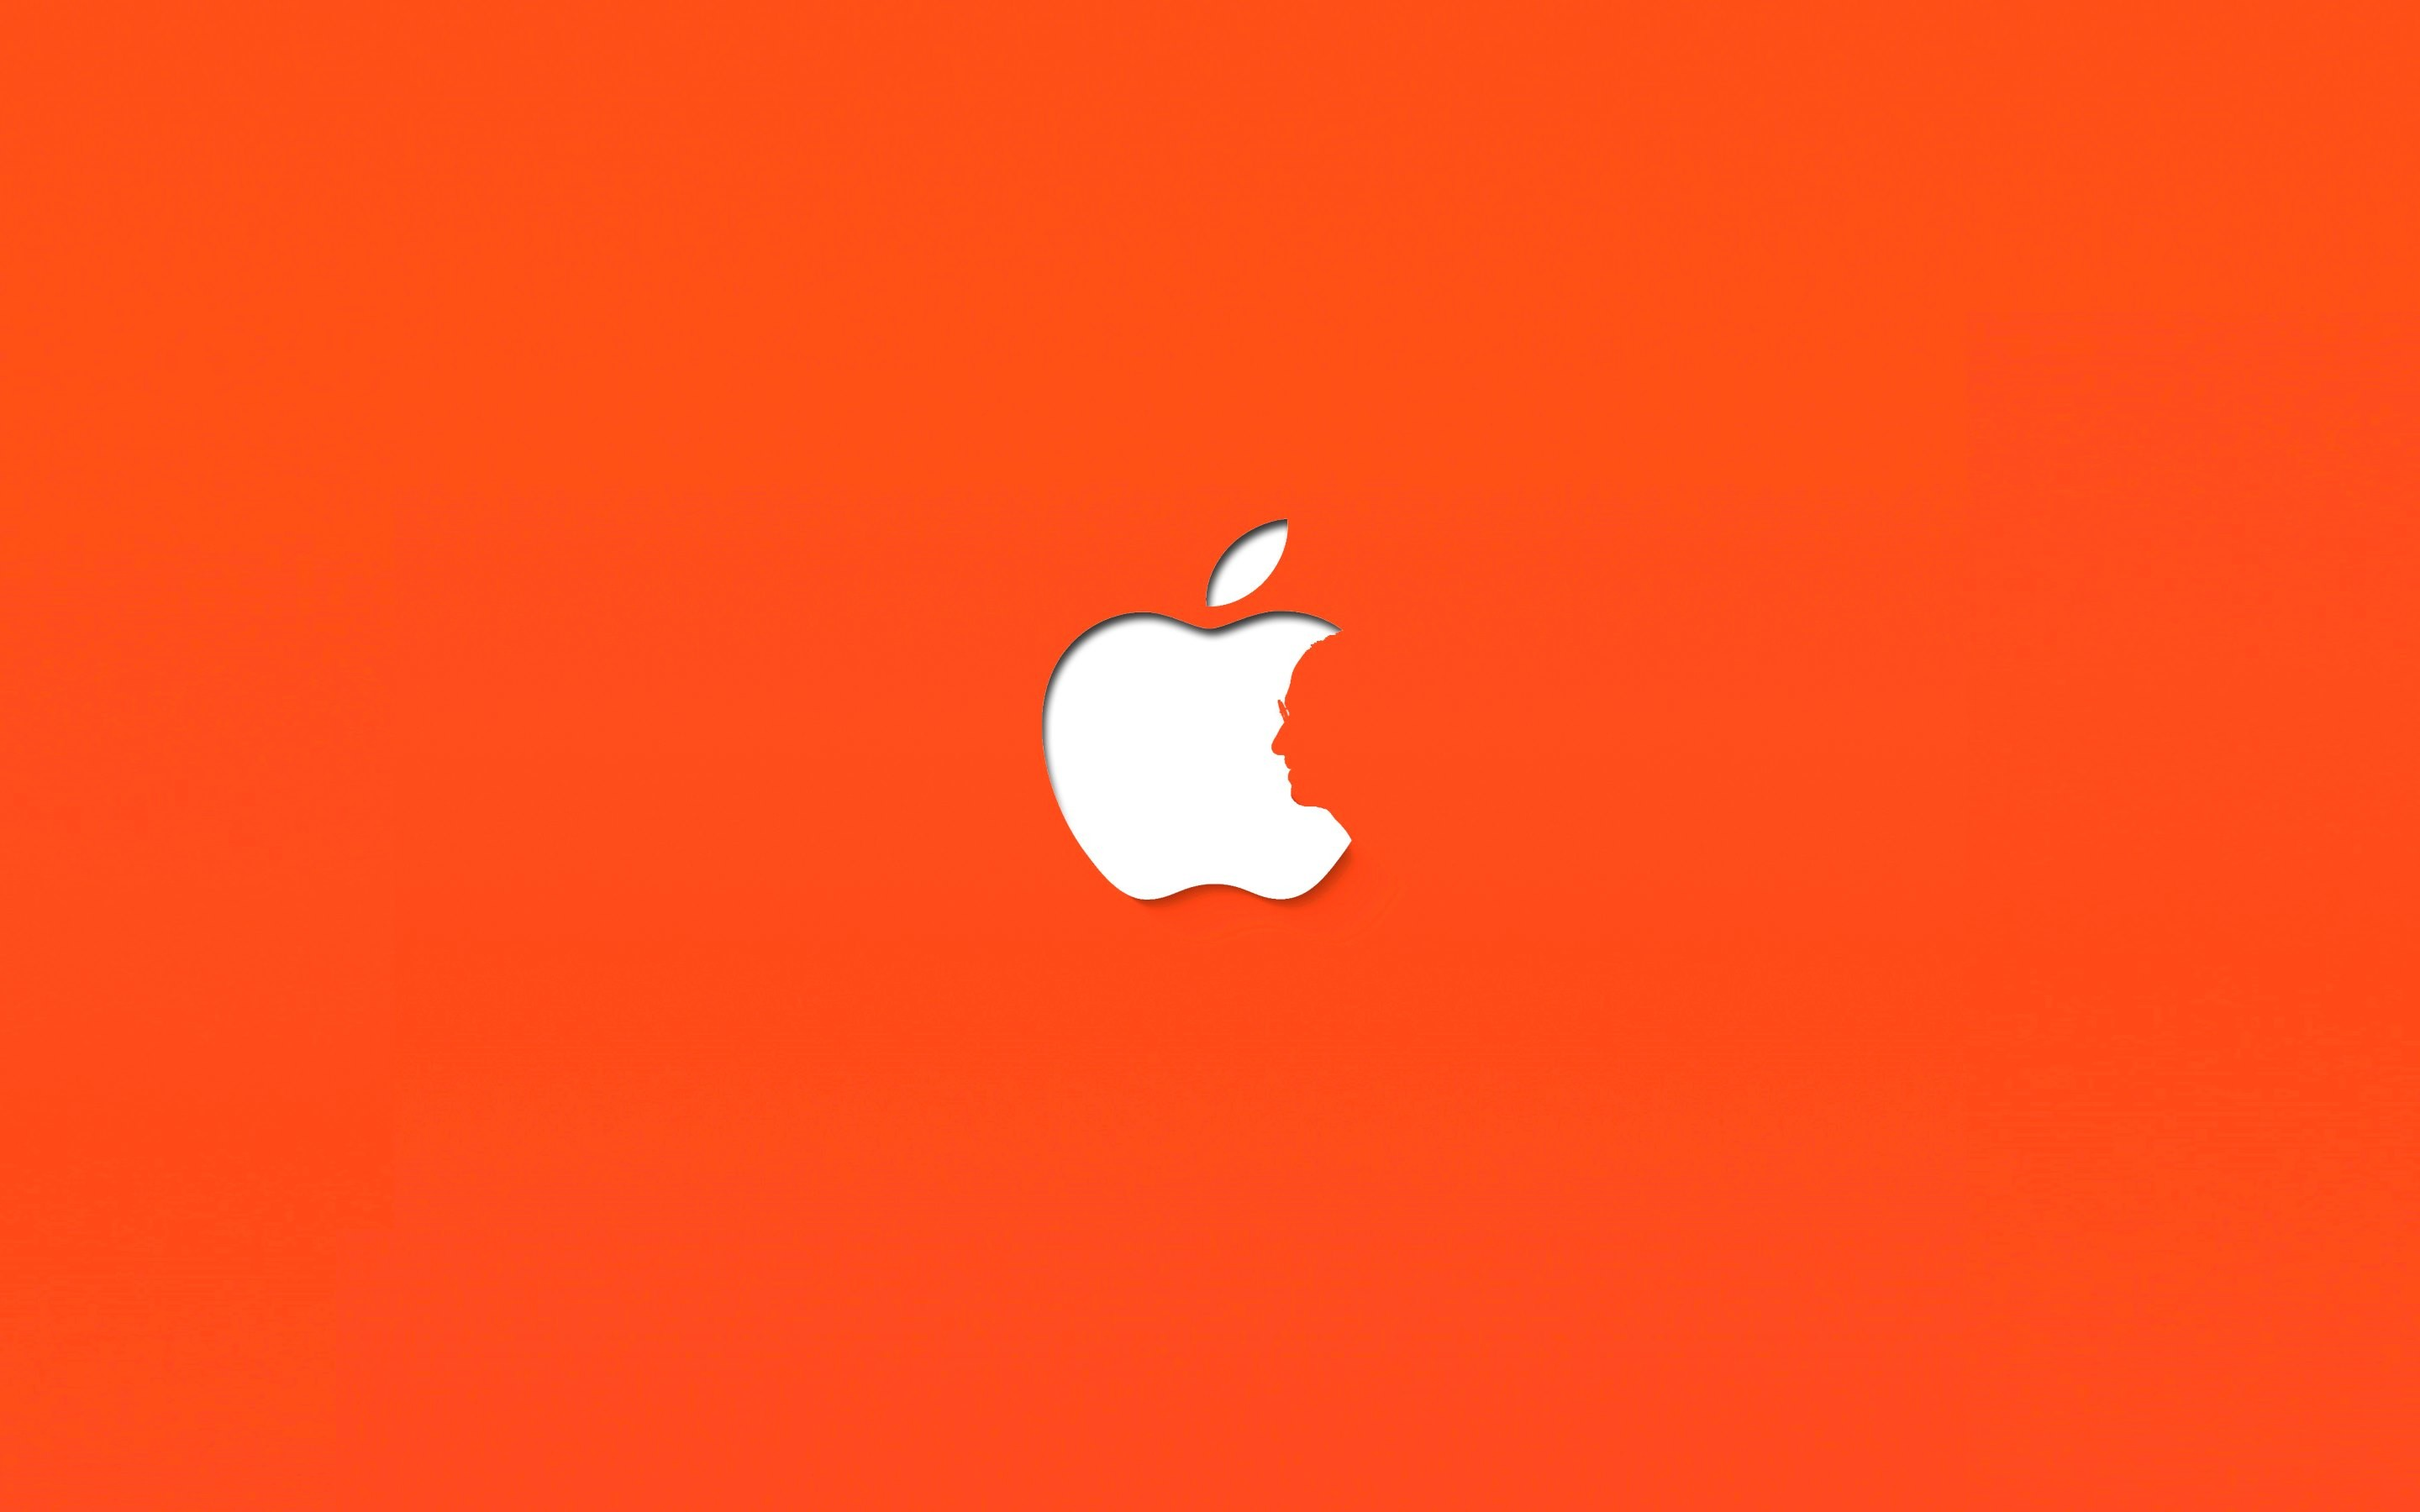 Creative Apple logo iPhone Wallpapers Apple Fever